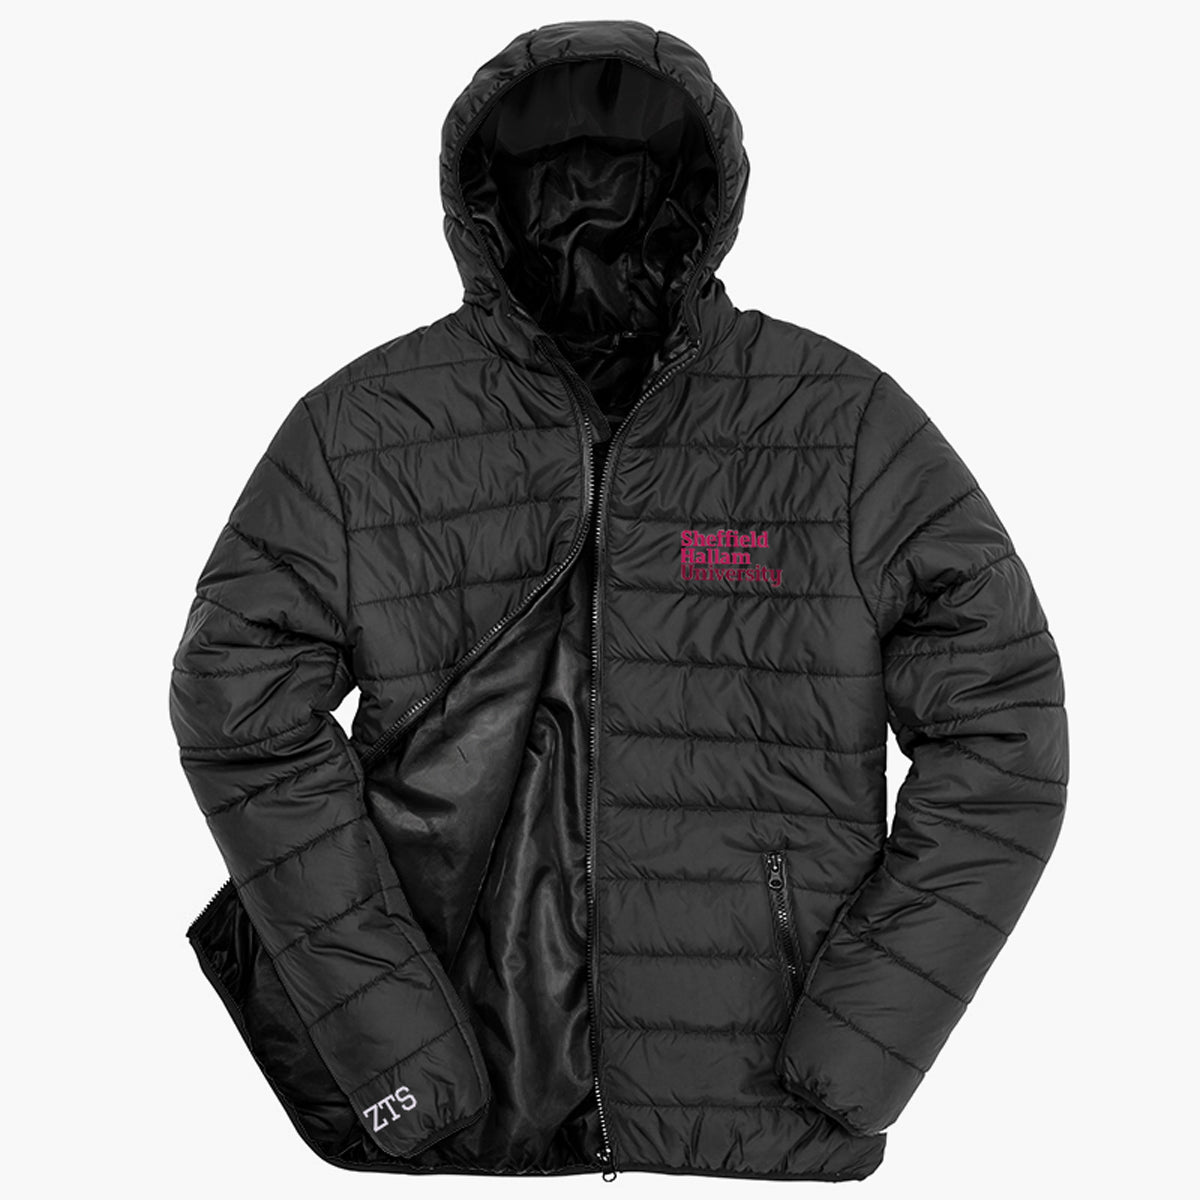 SHU Padded Jacket